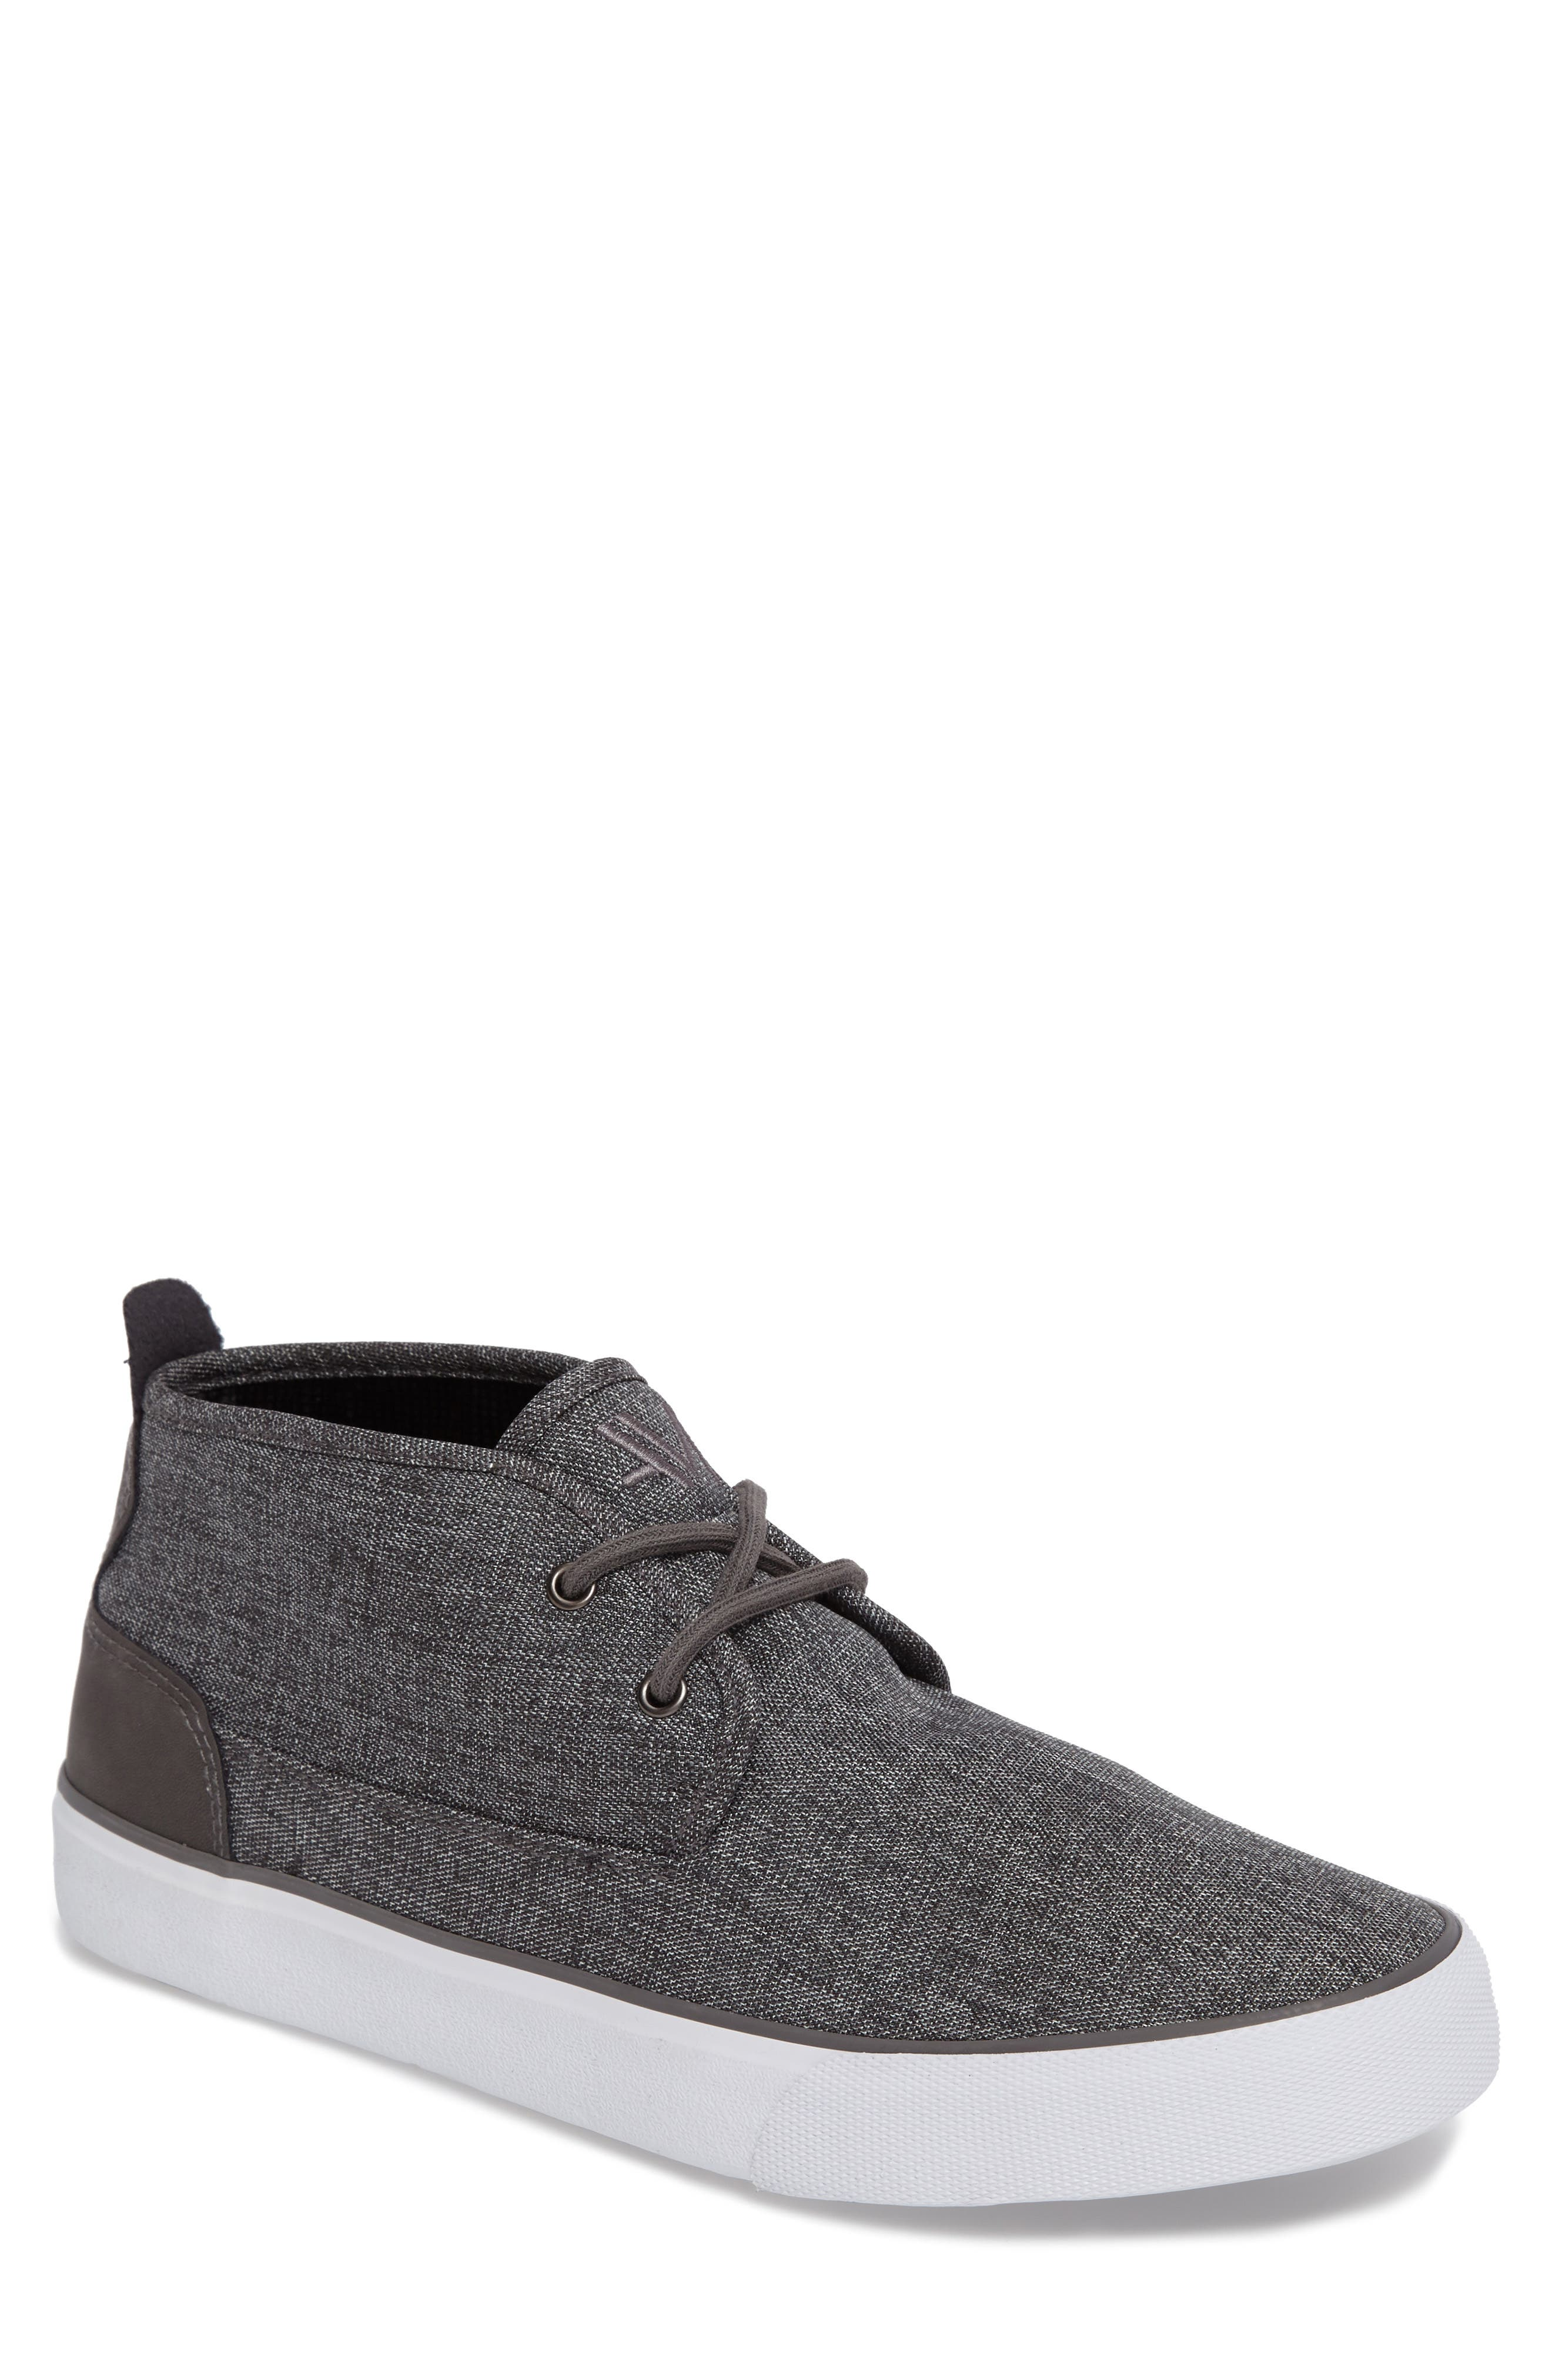 Andrew Marc Reade Chukka Sneaker (Men)